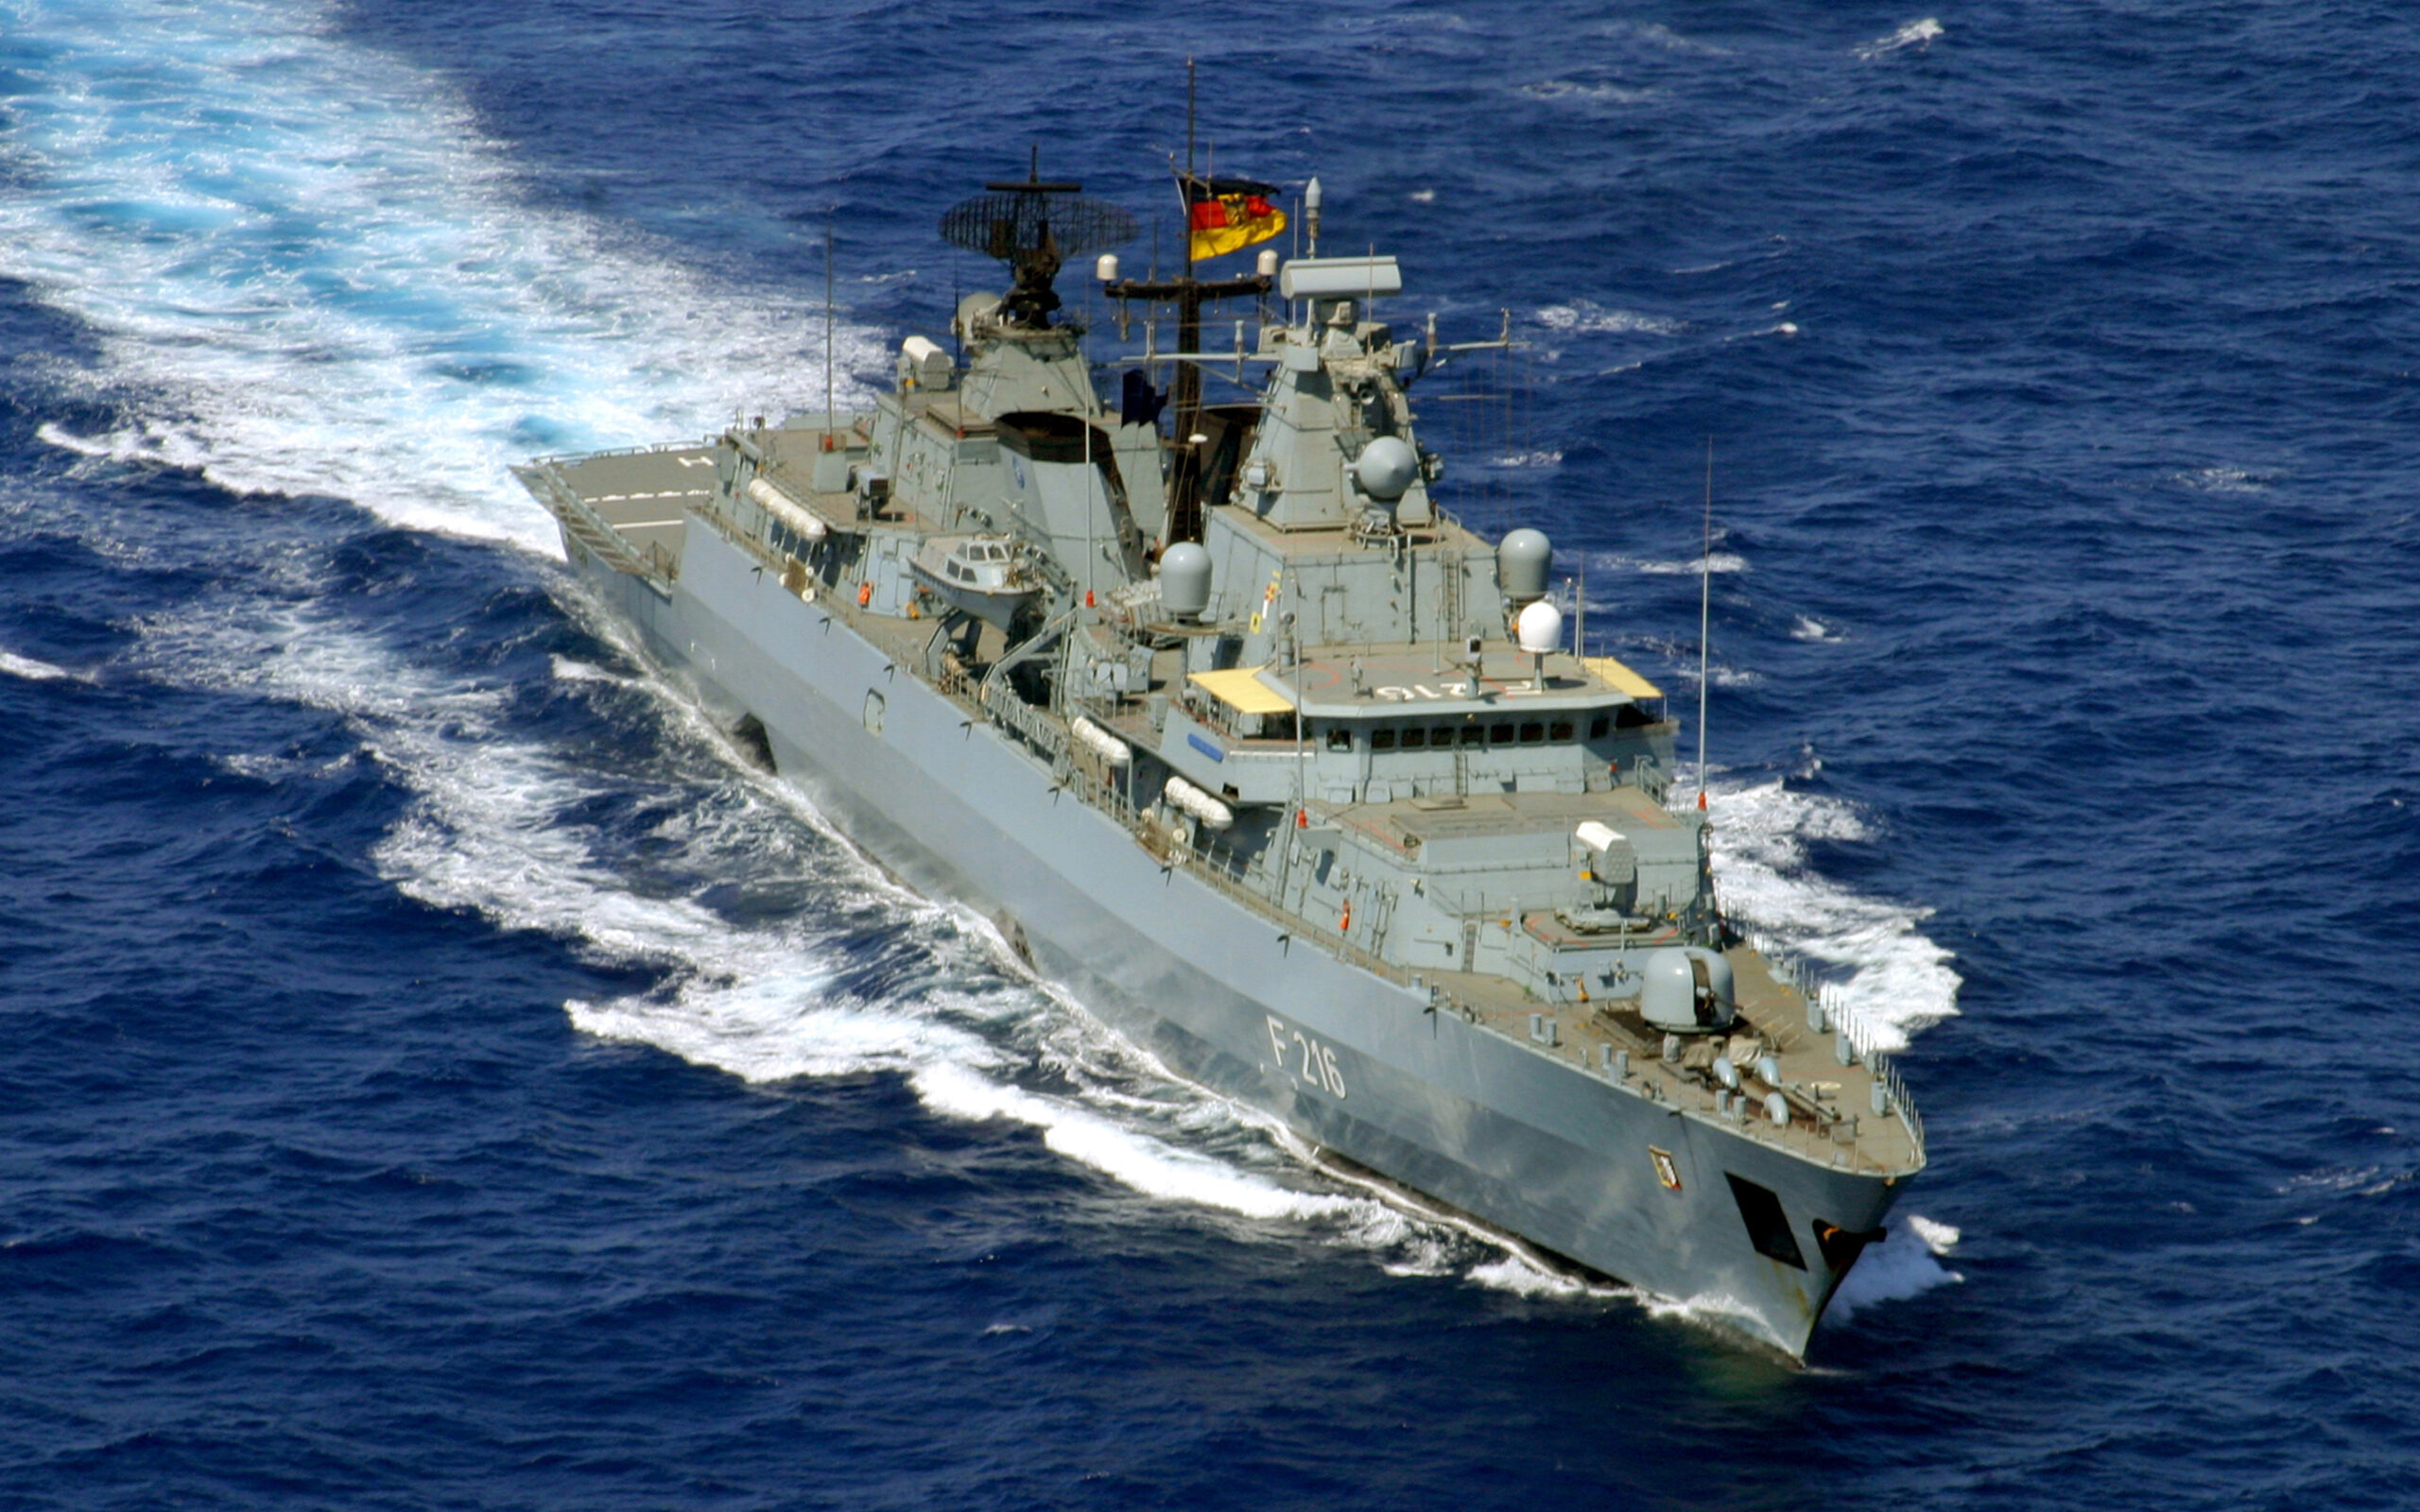 Navy Voyage To The Pacific Demonstrates Germany's Intent To Be Global Military Power